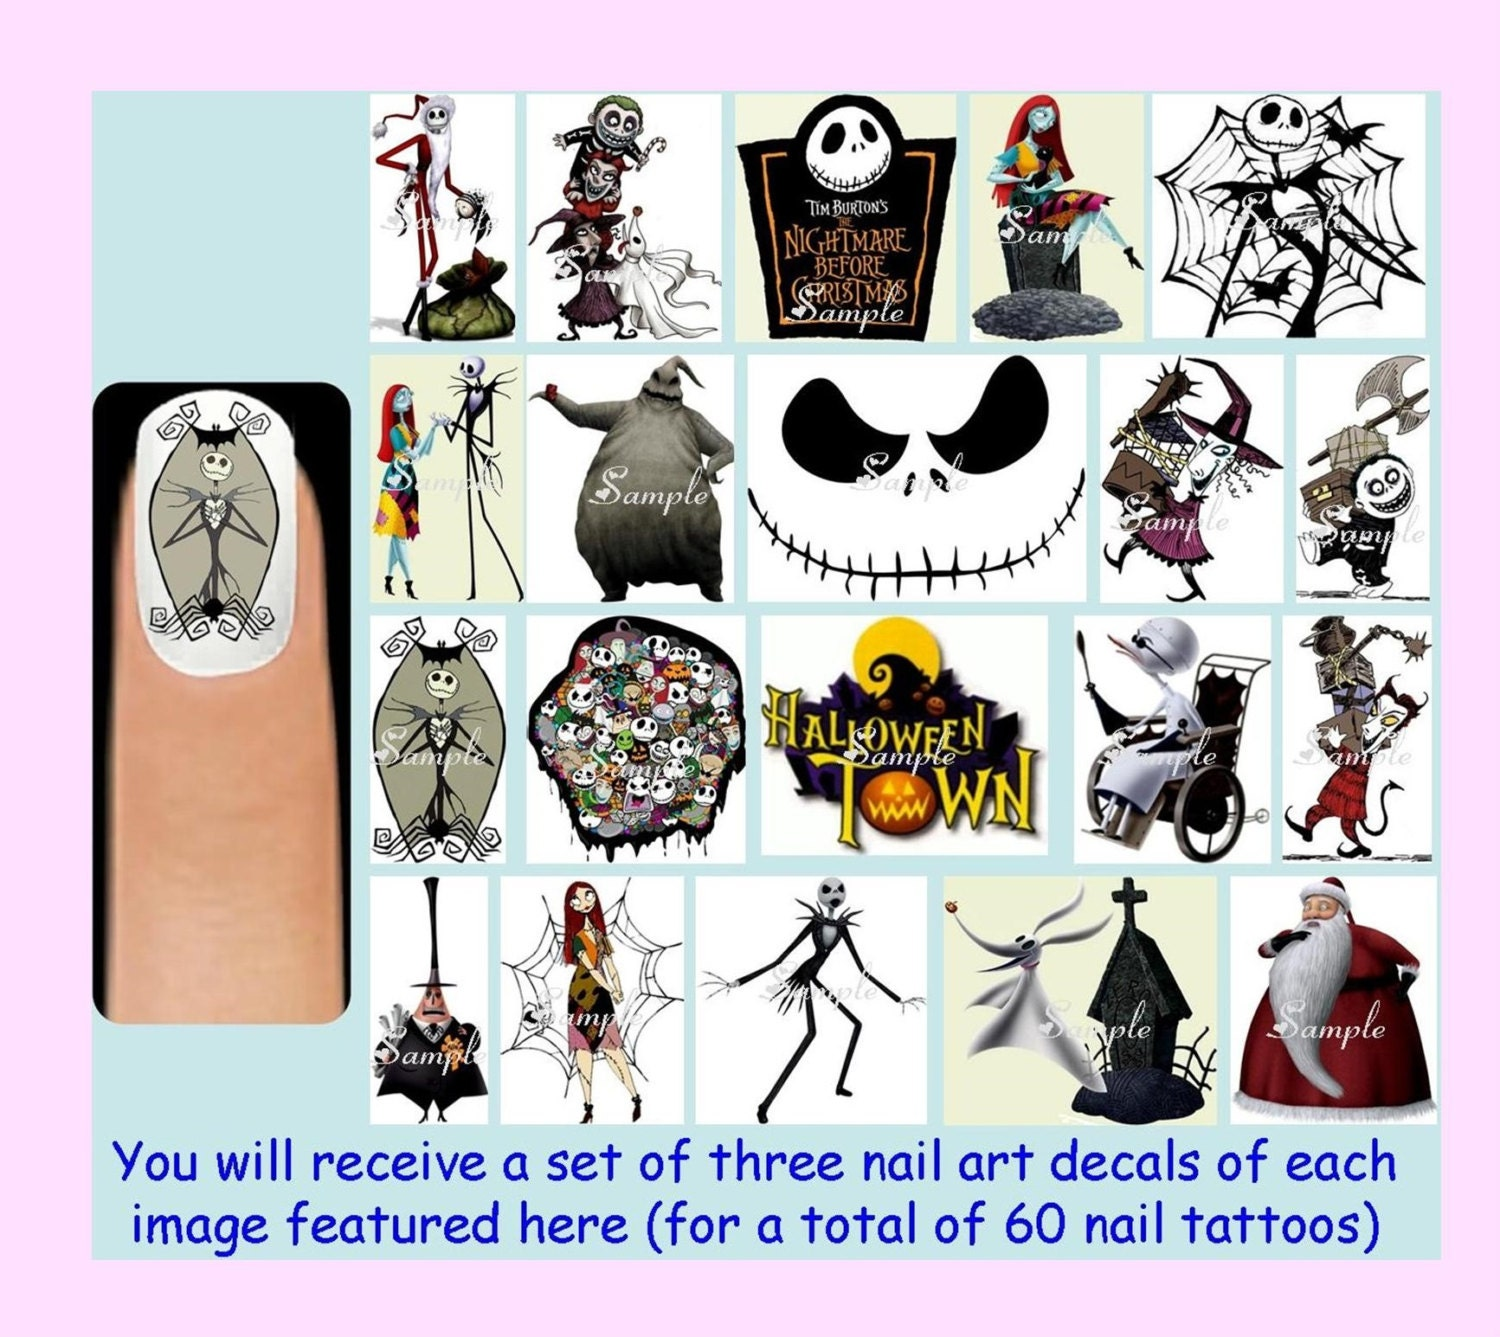 60 x The NIGHTMARE BEFORE CHRISTMAS Nail Art Decals Free | Etsy